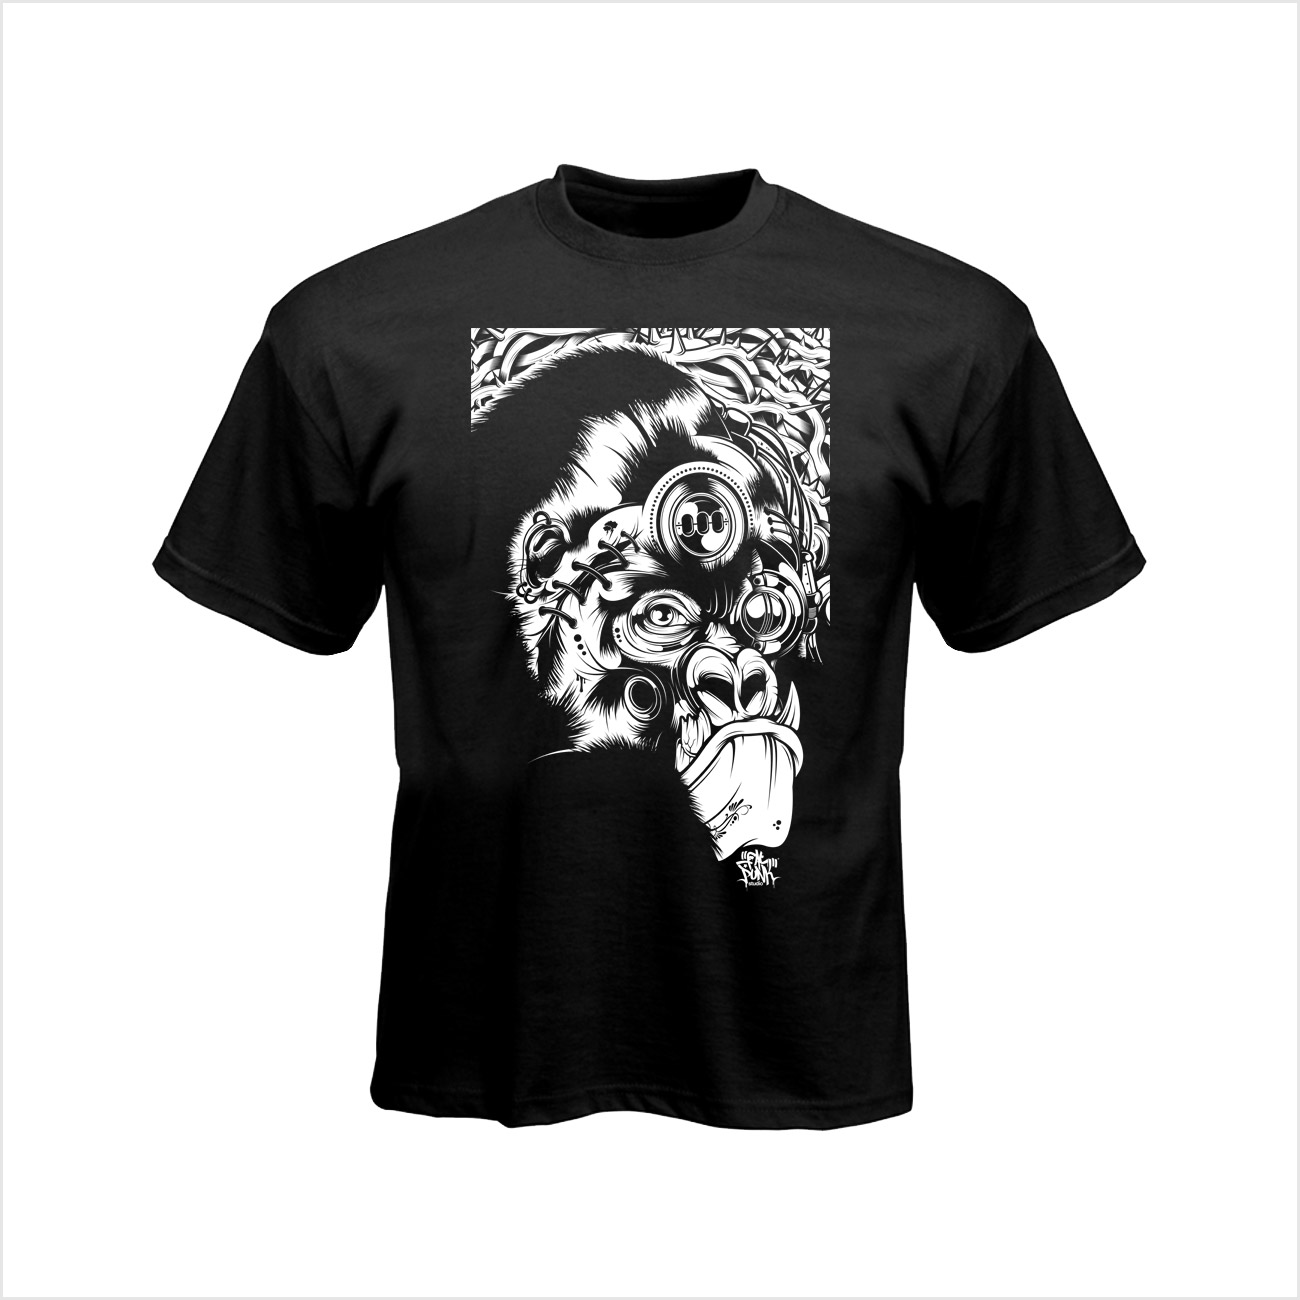 fat-punk-studio-gorilla-t-shirt-black-01